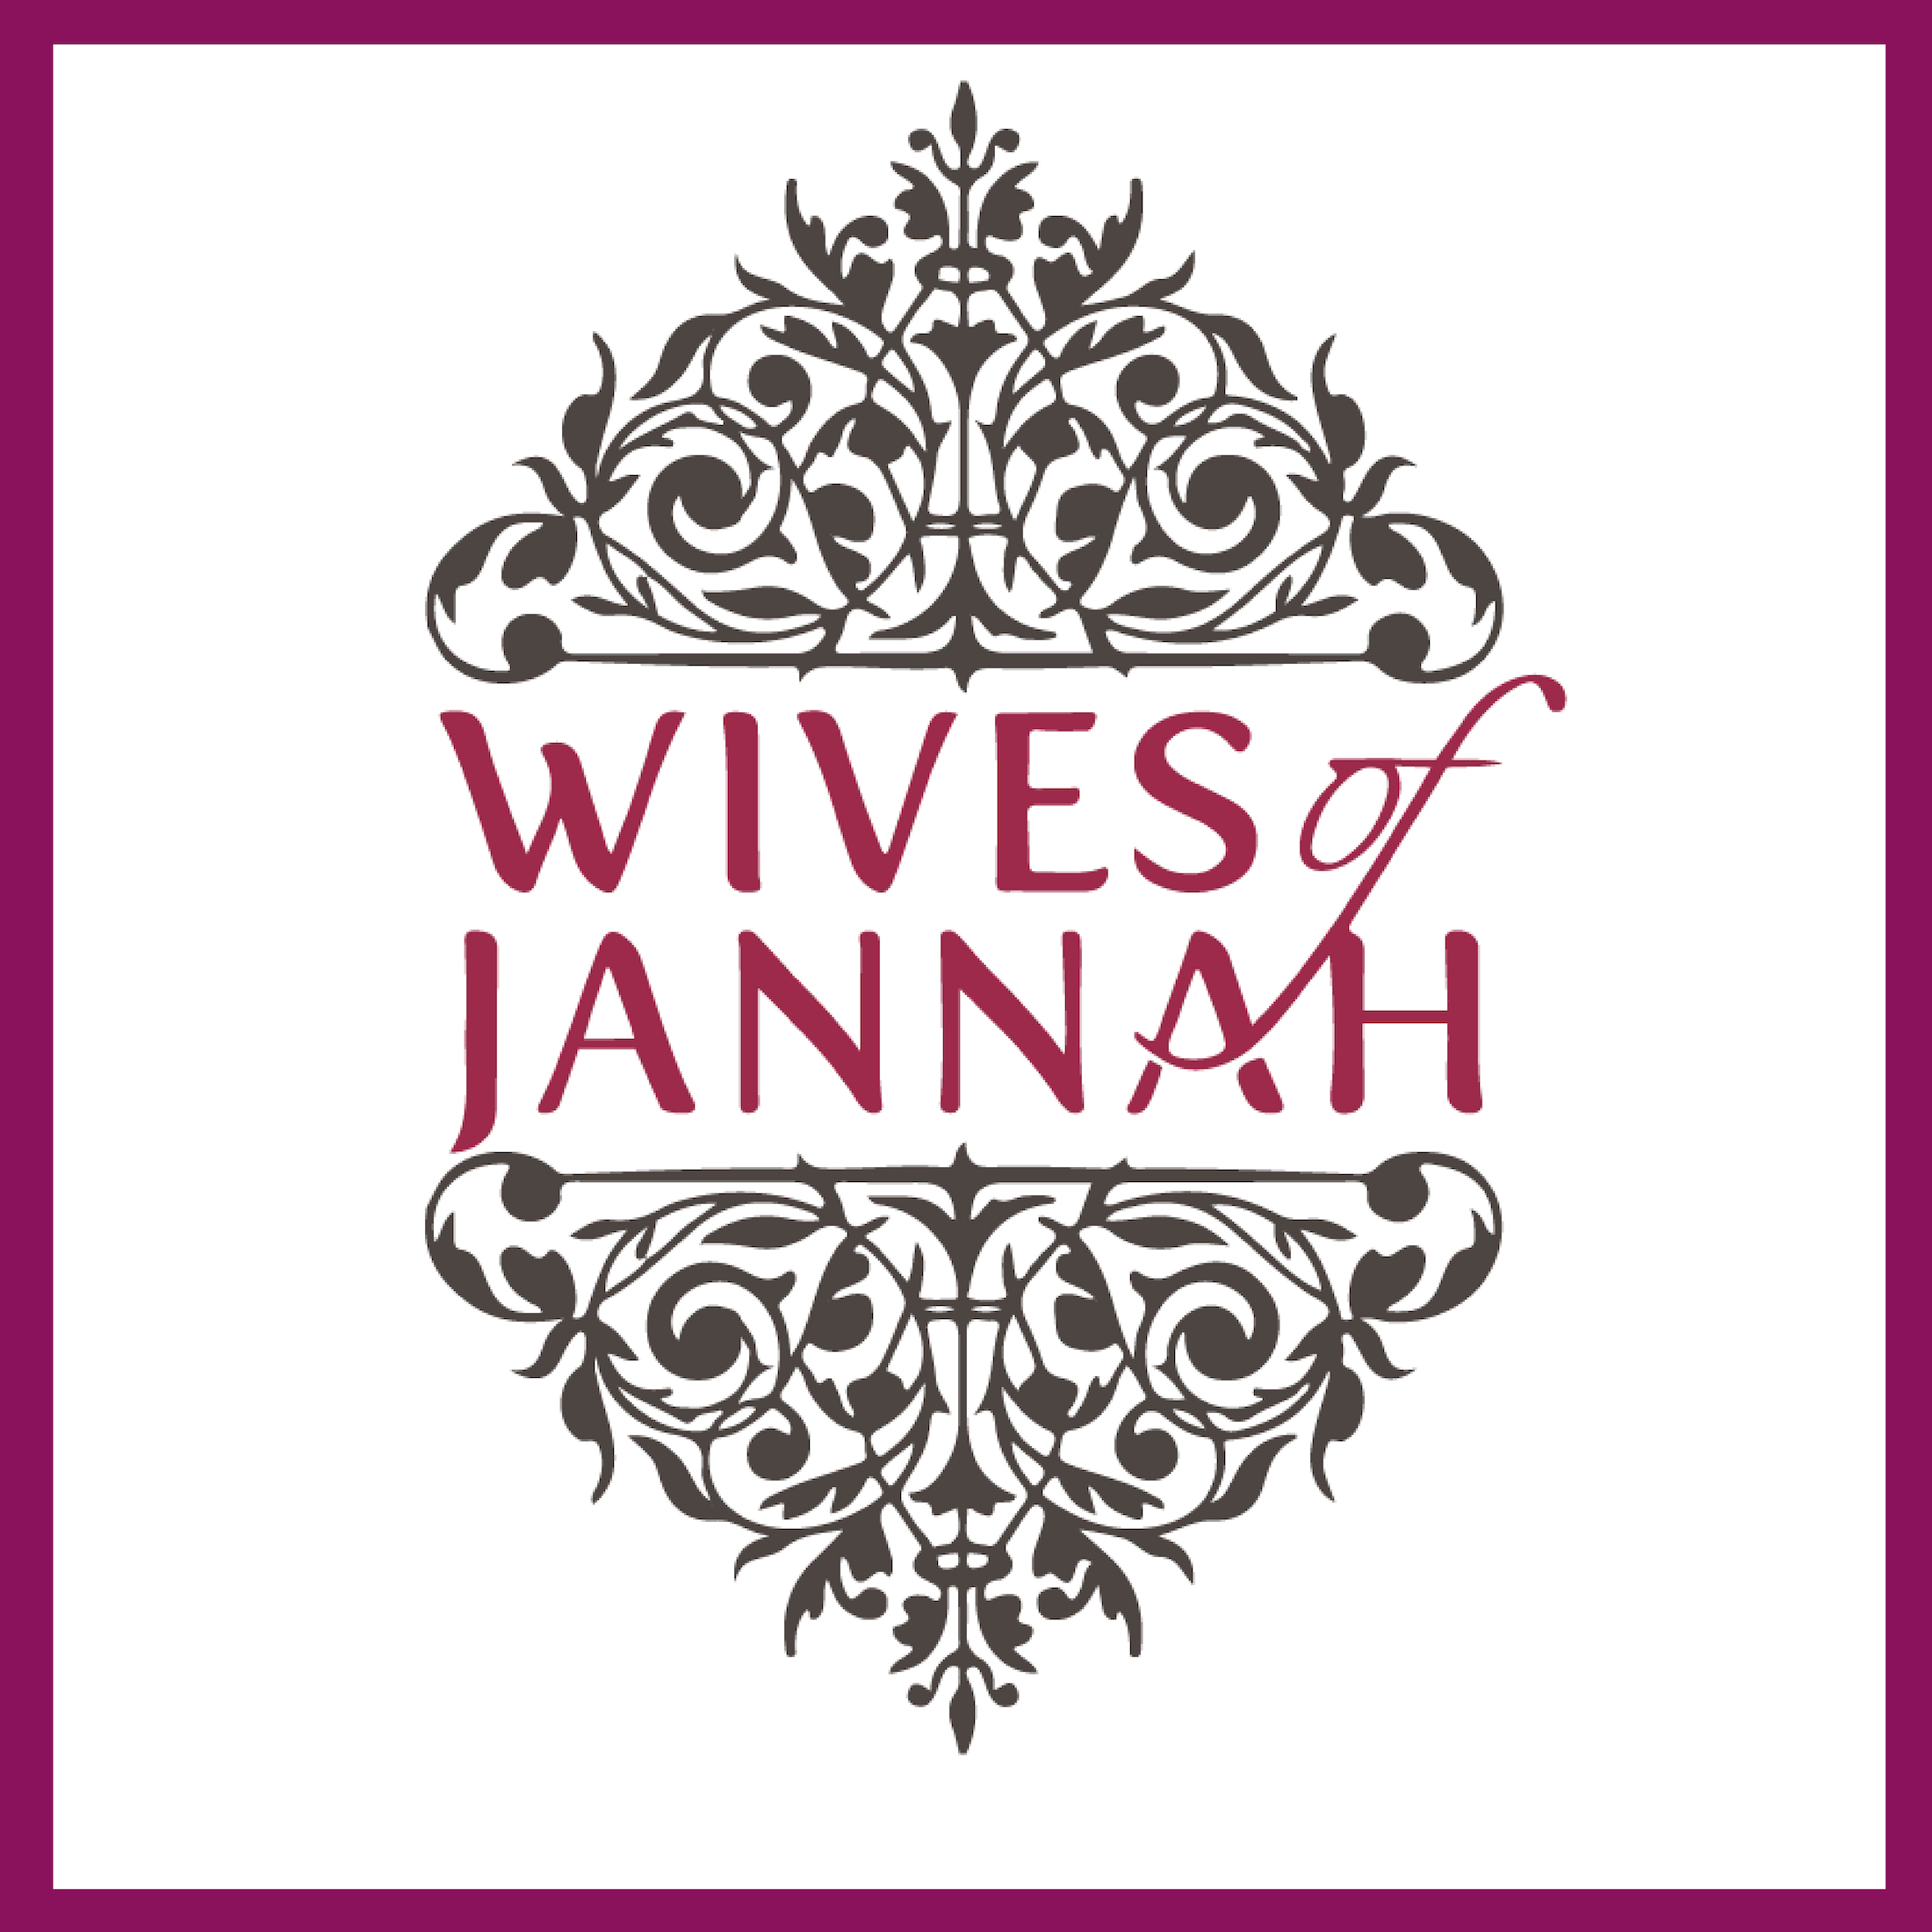 Wives of Jannah: Islamic Relationship Advice show art